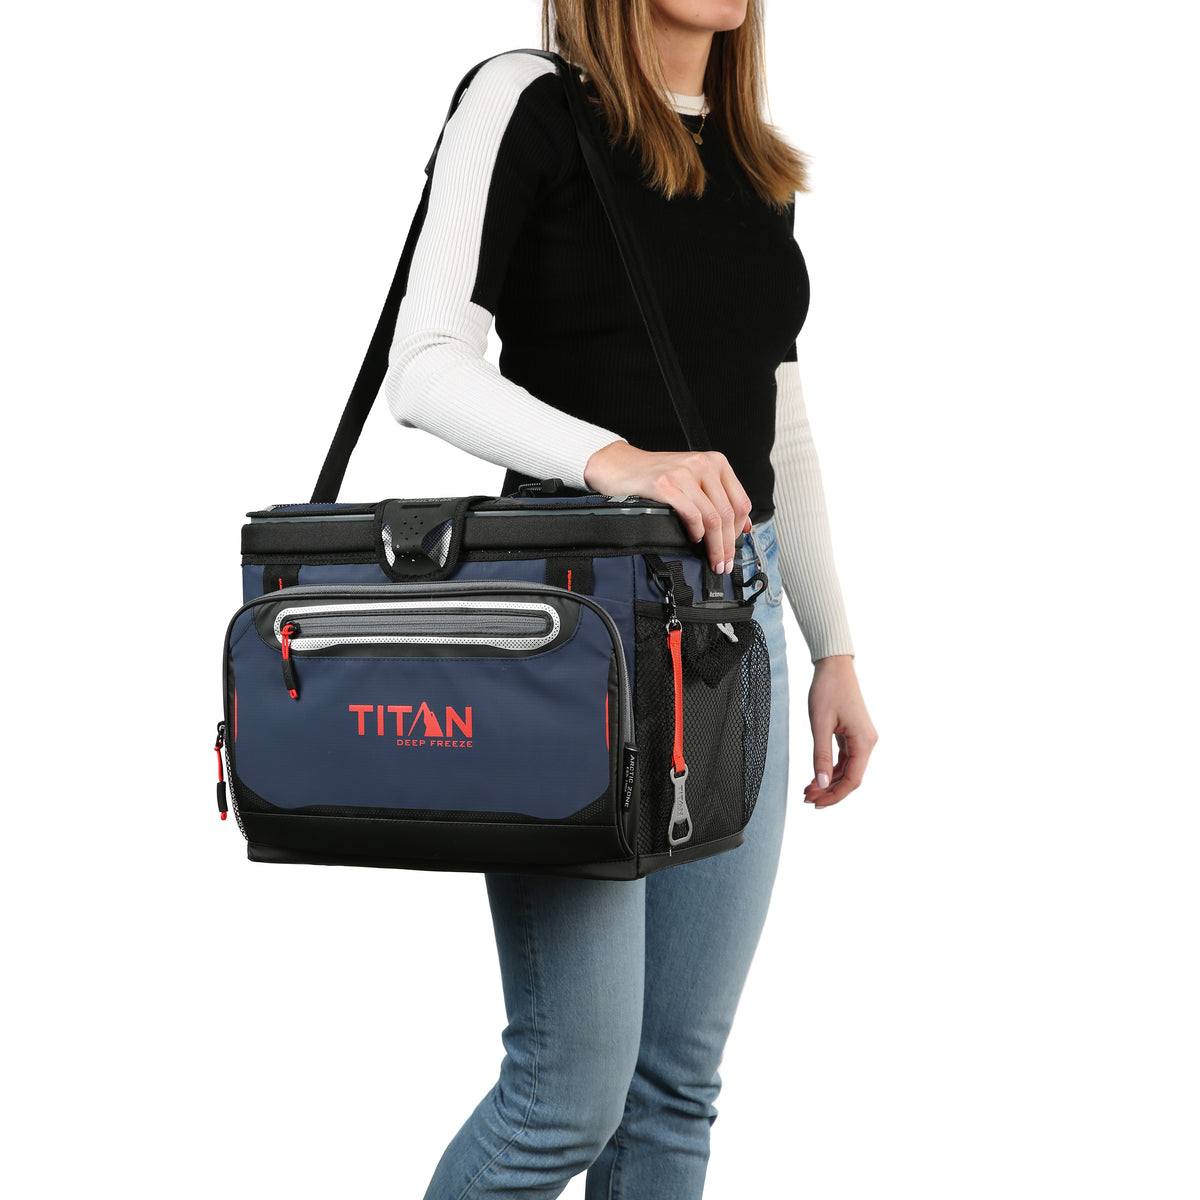 Titan Deep Freeze® 30 Can Zipperless™ Cooler - Navy - Model carrying cooler